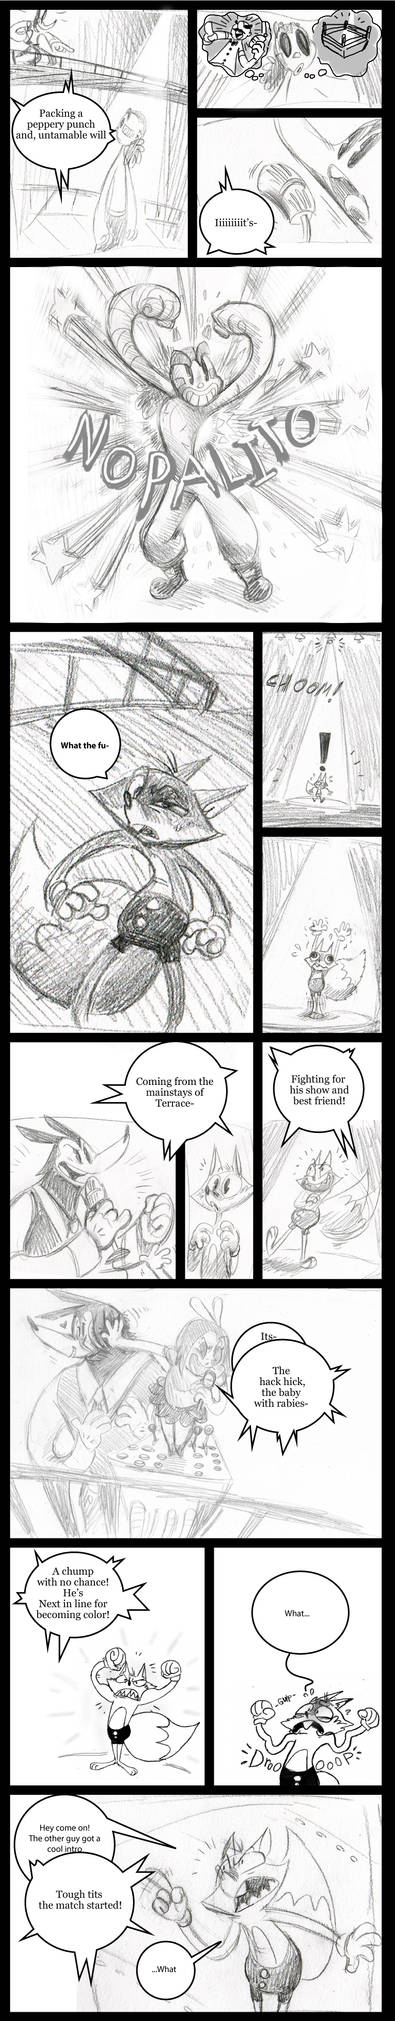 Round 2 Toons Jalapeno Business pg 7